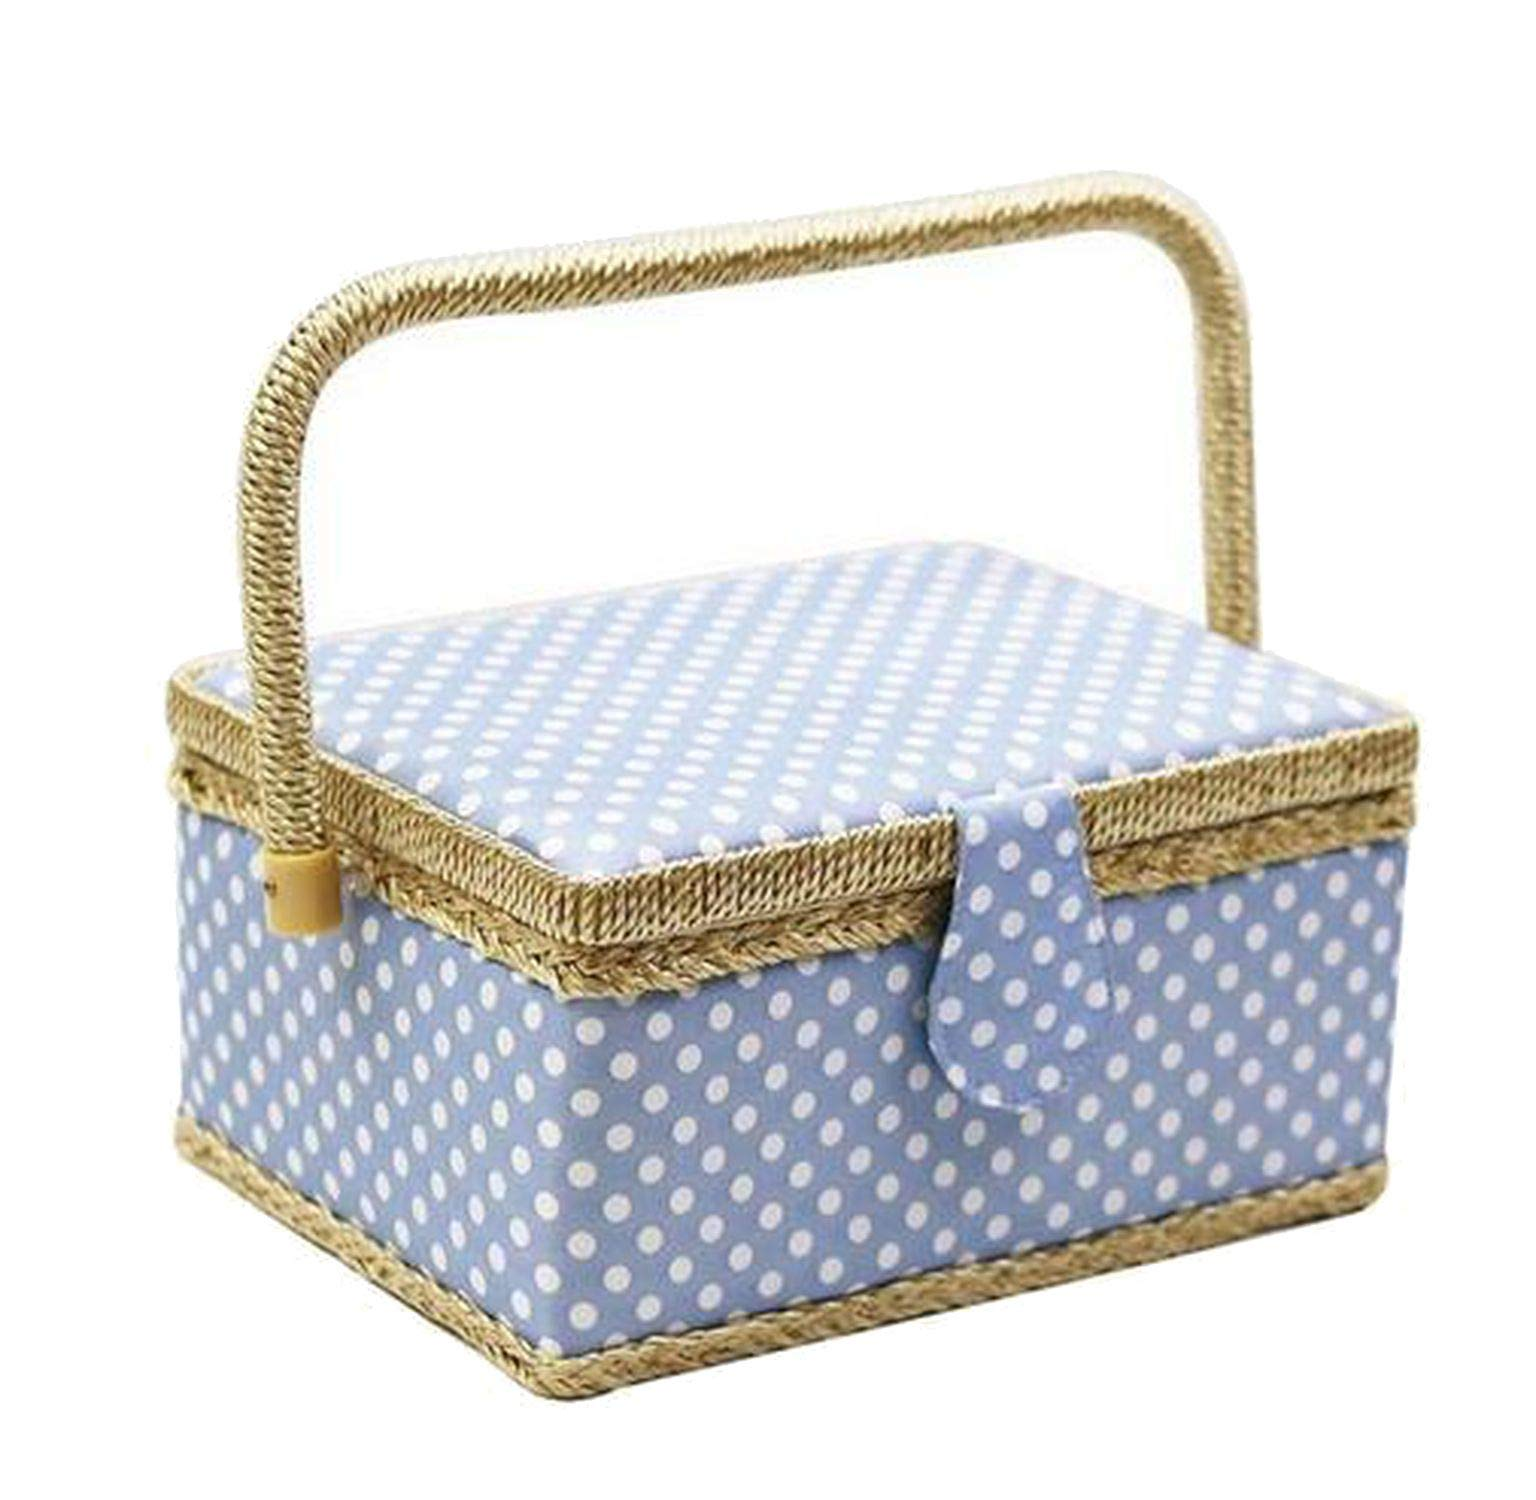 Handmade Sewing Basket with Sewing Kit Accessories Fabric Crafts Sewing Tools Storage Box Children's Gift,Blue by ONLY-FOR-ME-1